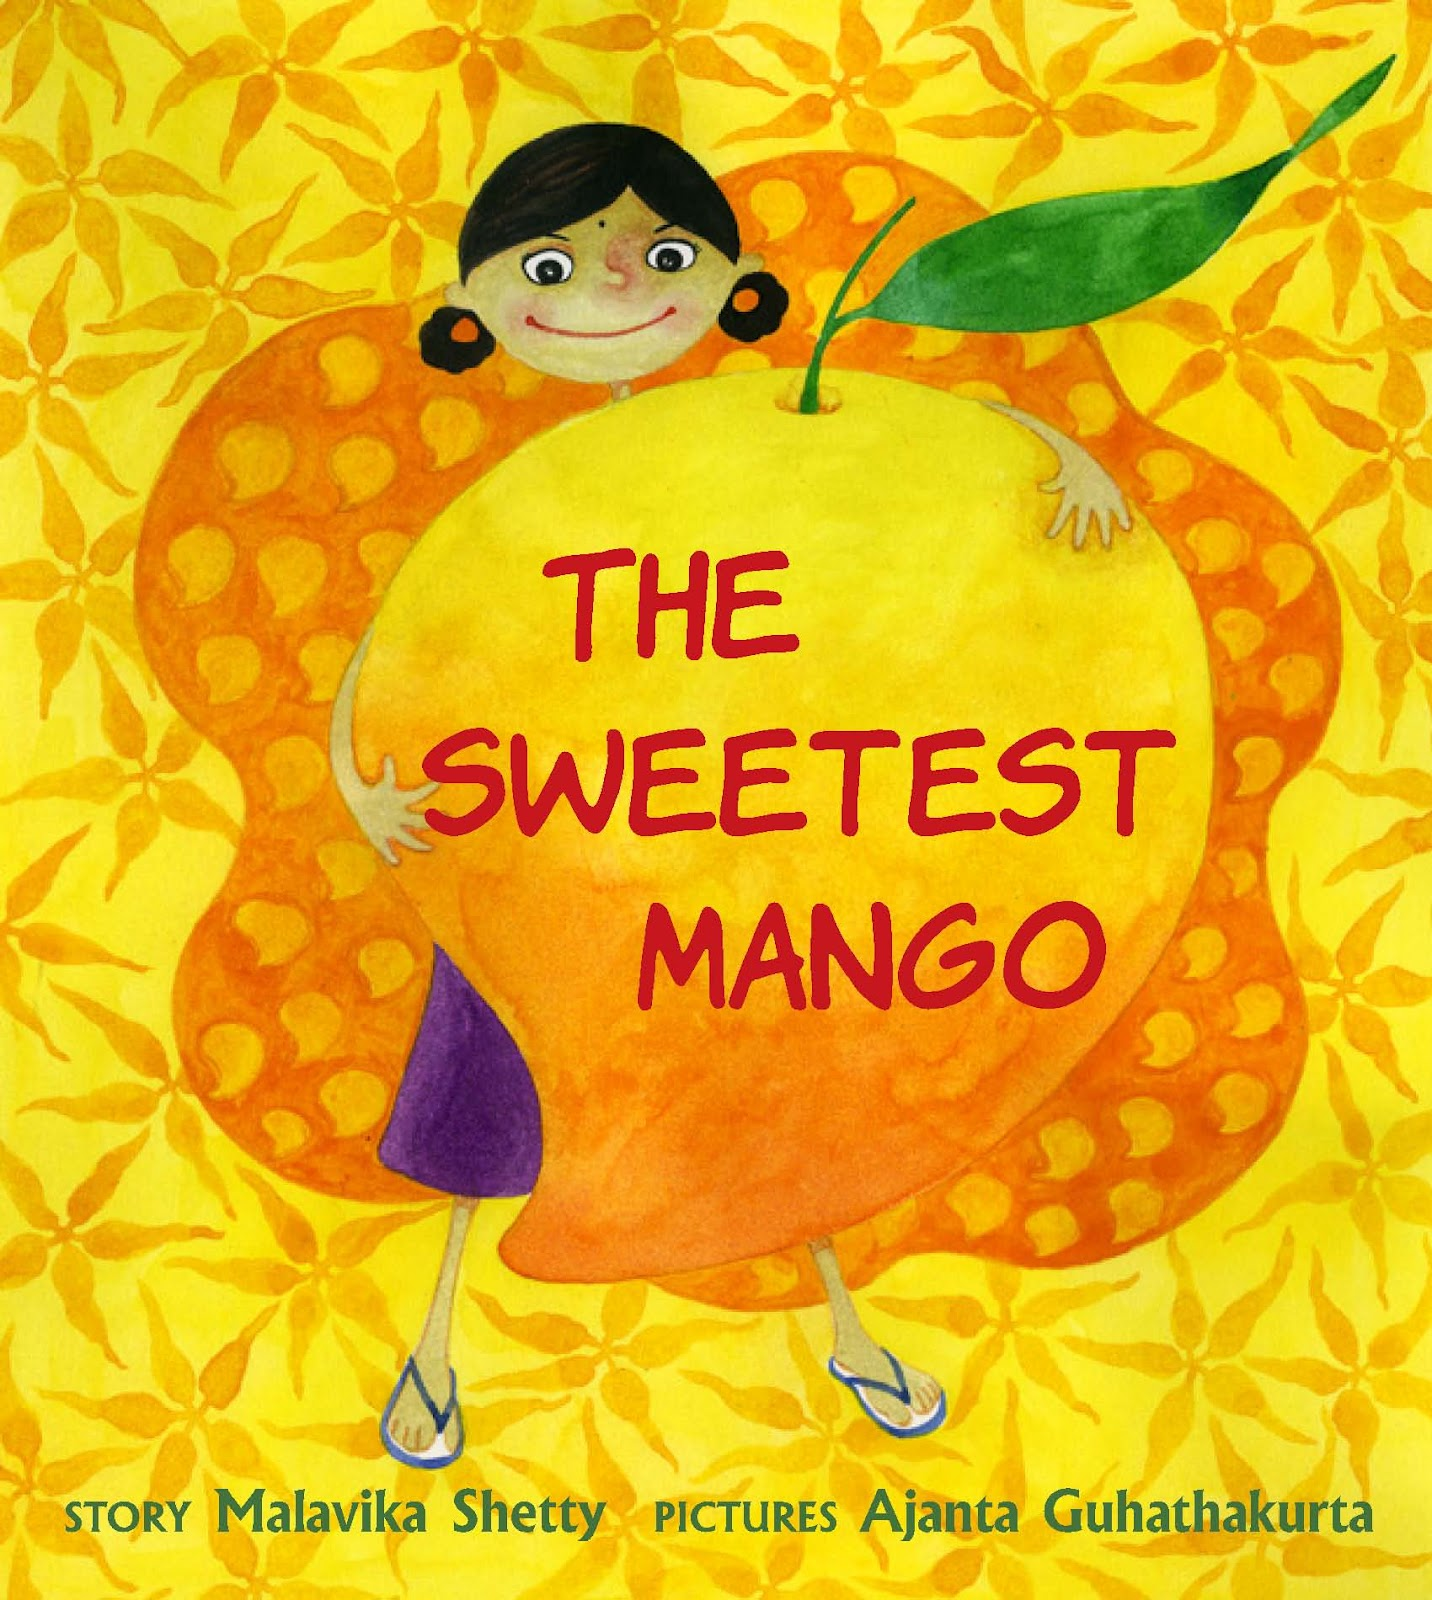 my favourite fruit mango essay My favourite fruit mango is one of the delicious seasonal fruits grown in the tropicsthe mango fruit is a juicy stone fruit it is a tropical fruit that is high in vitamin c mango fruits contain 10-20 percent sugar and.